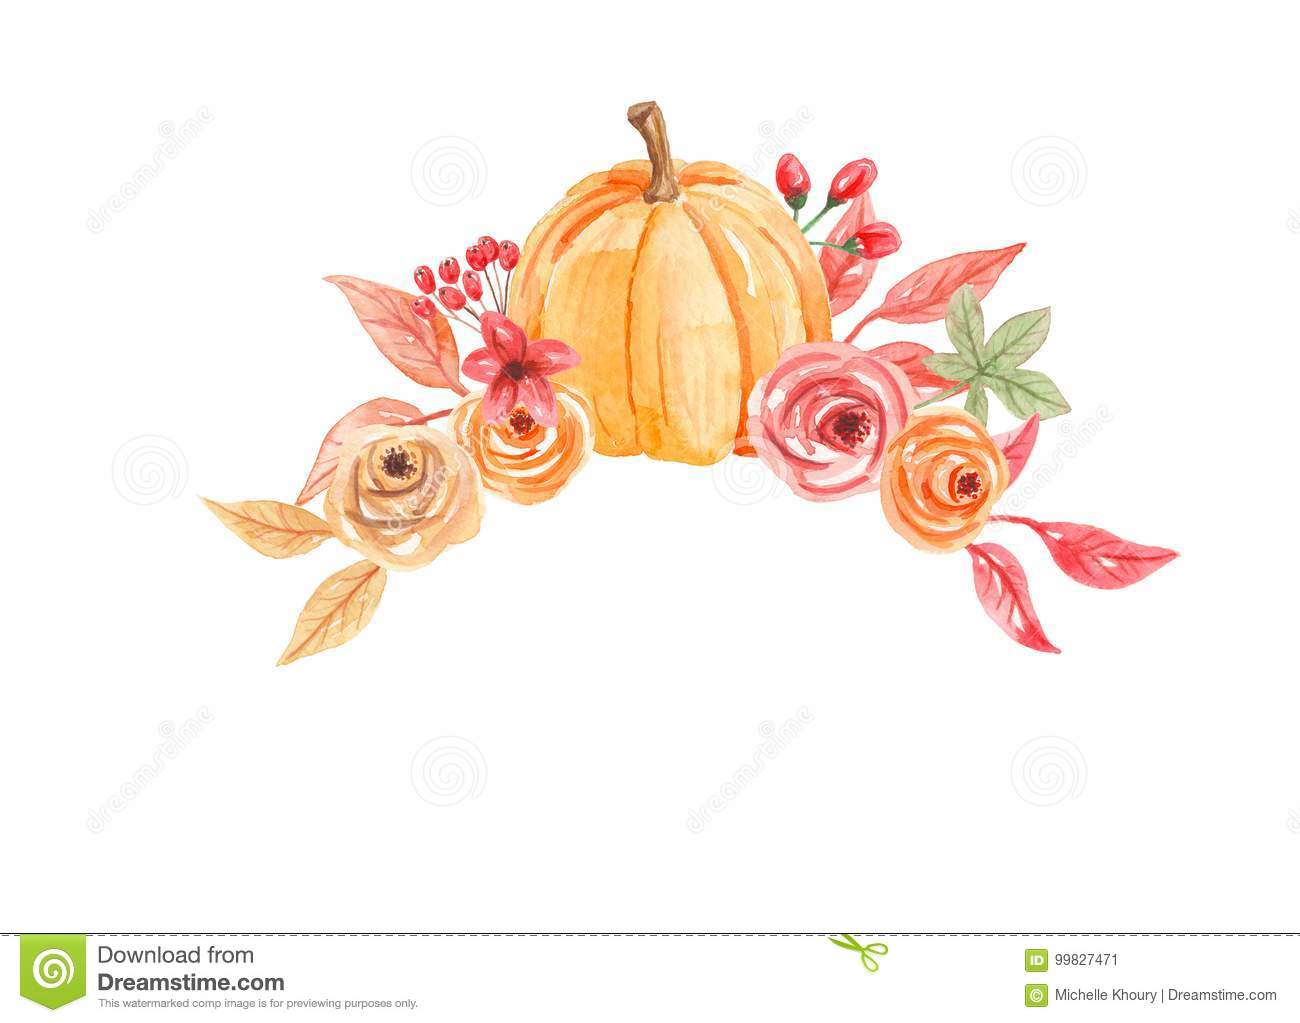 Watercolor Pumpkins Arch Flowers Hand Painted Fall Autumn Bouquet